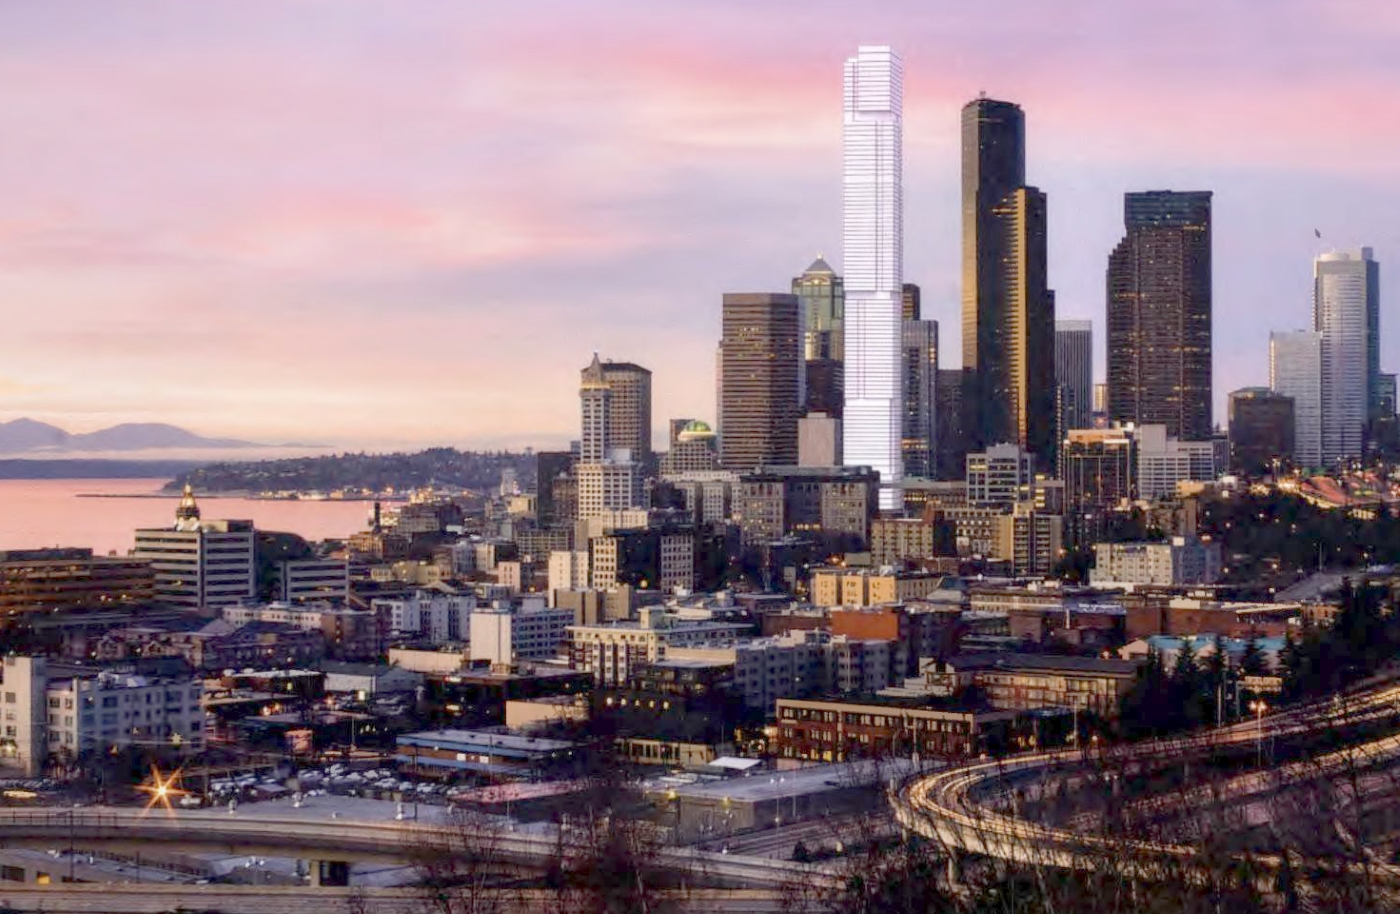 Cresent Heights Aims For Tallest Tower In The West With